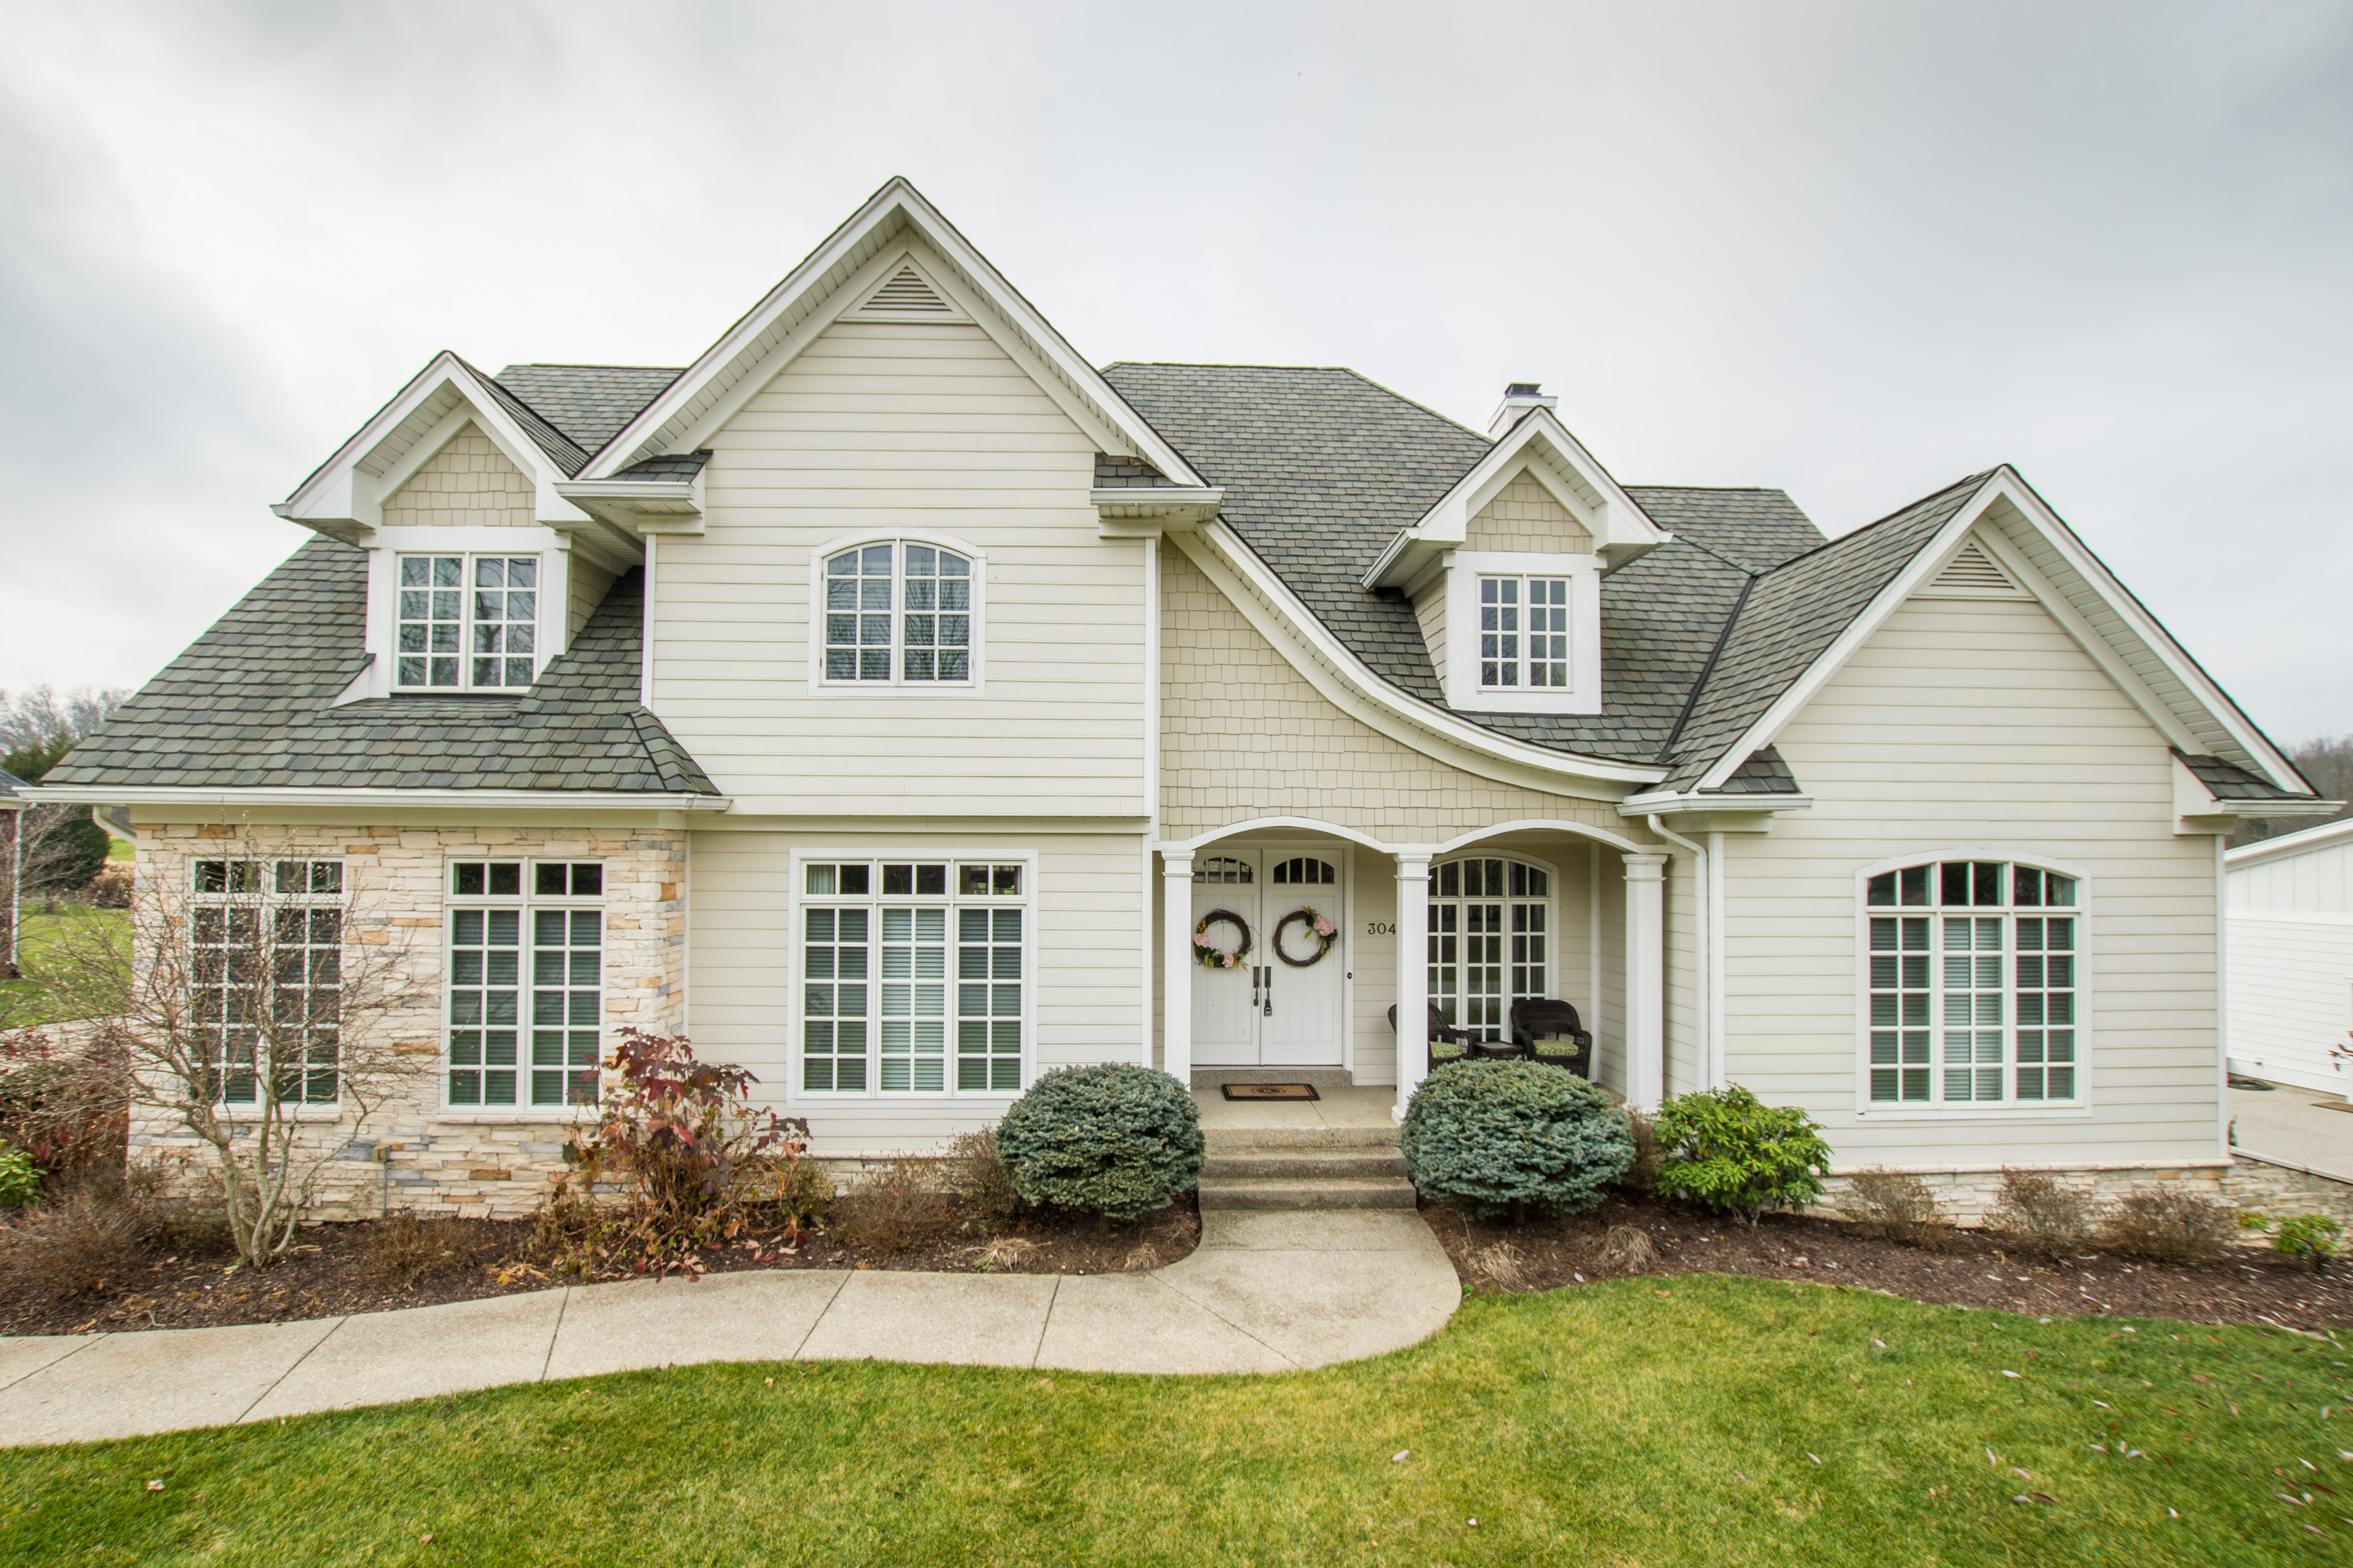 Property For Sale at 304 Arthur Hills Way